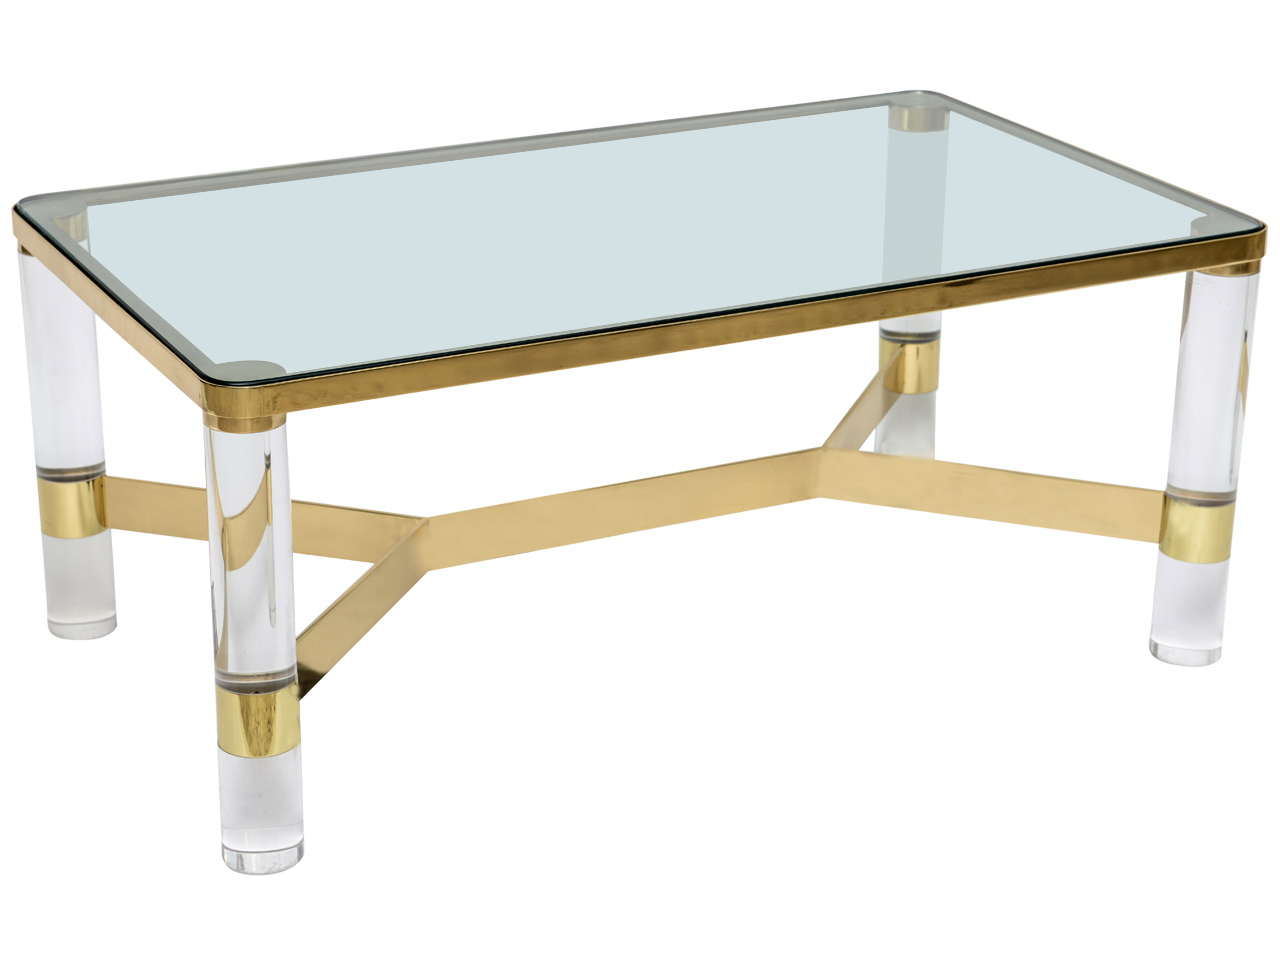 amazing lucite coffee table ikea homesfeed. Black Bedroom Furniture Sets. Home Design Ideas